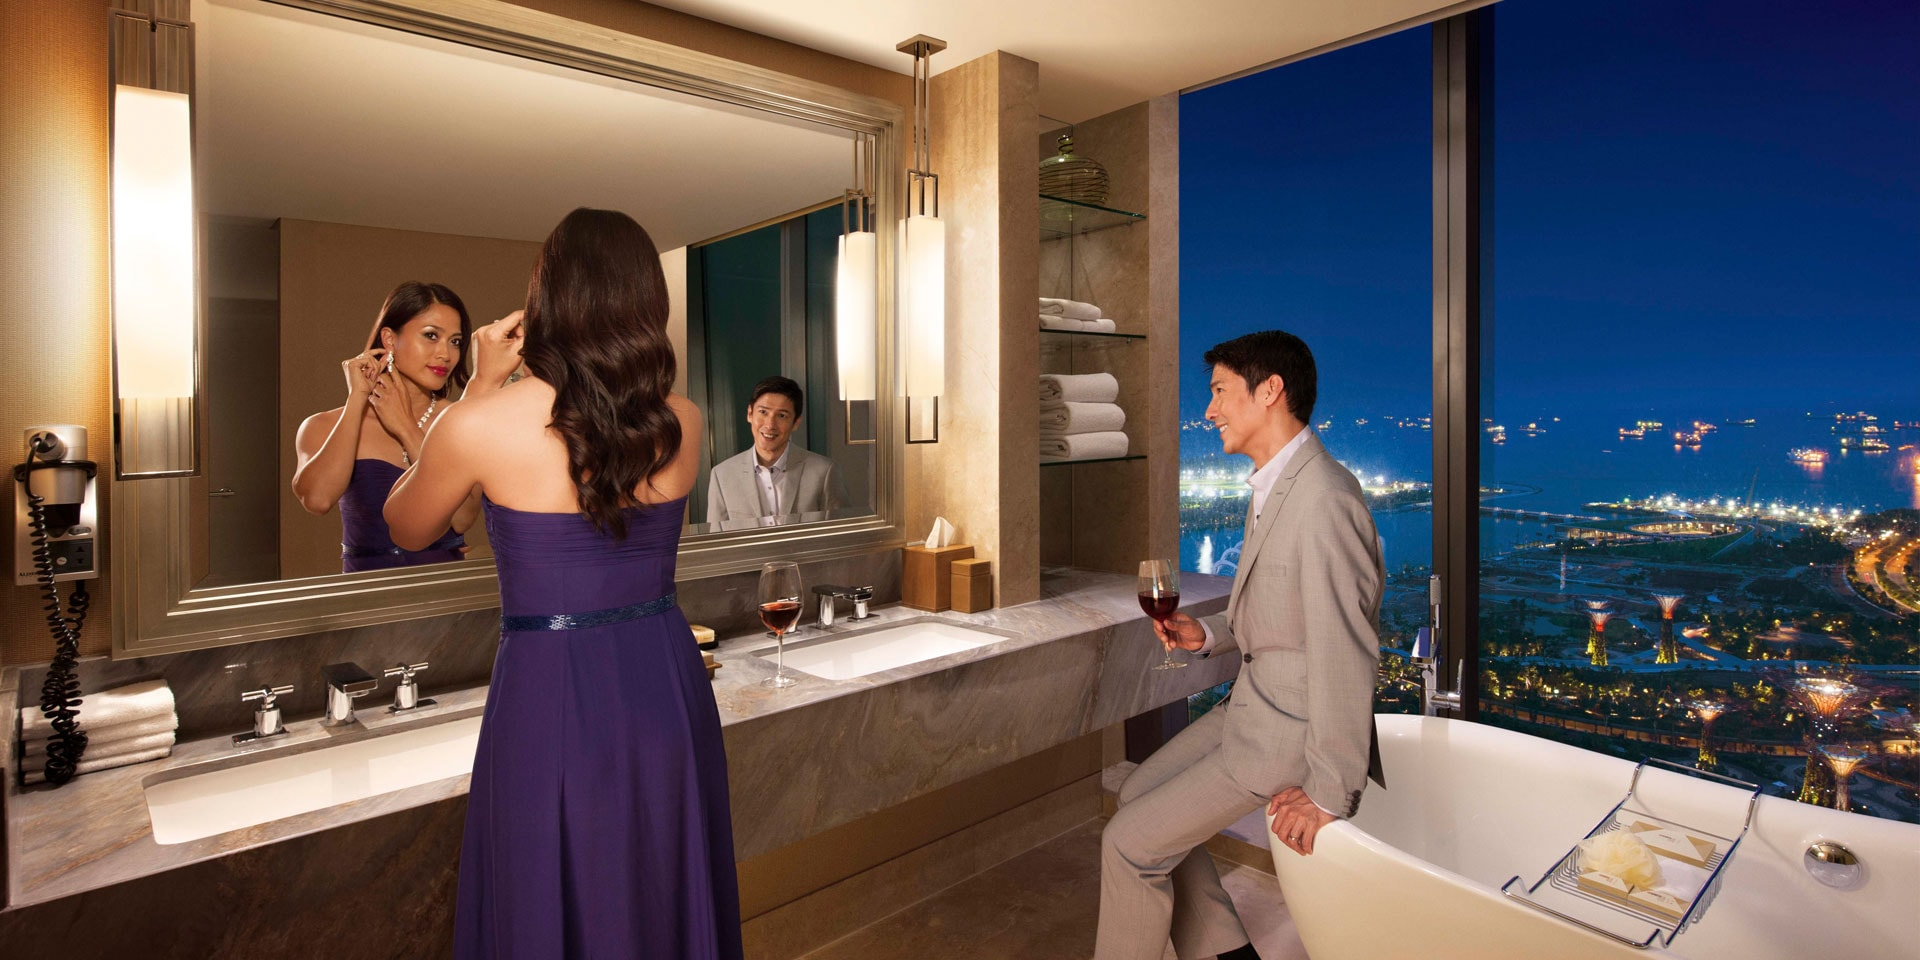 Orchard Suite Bathroom at Marina Bay Sands